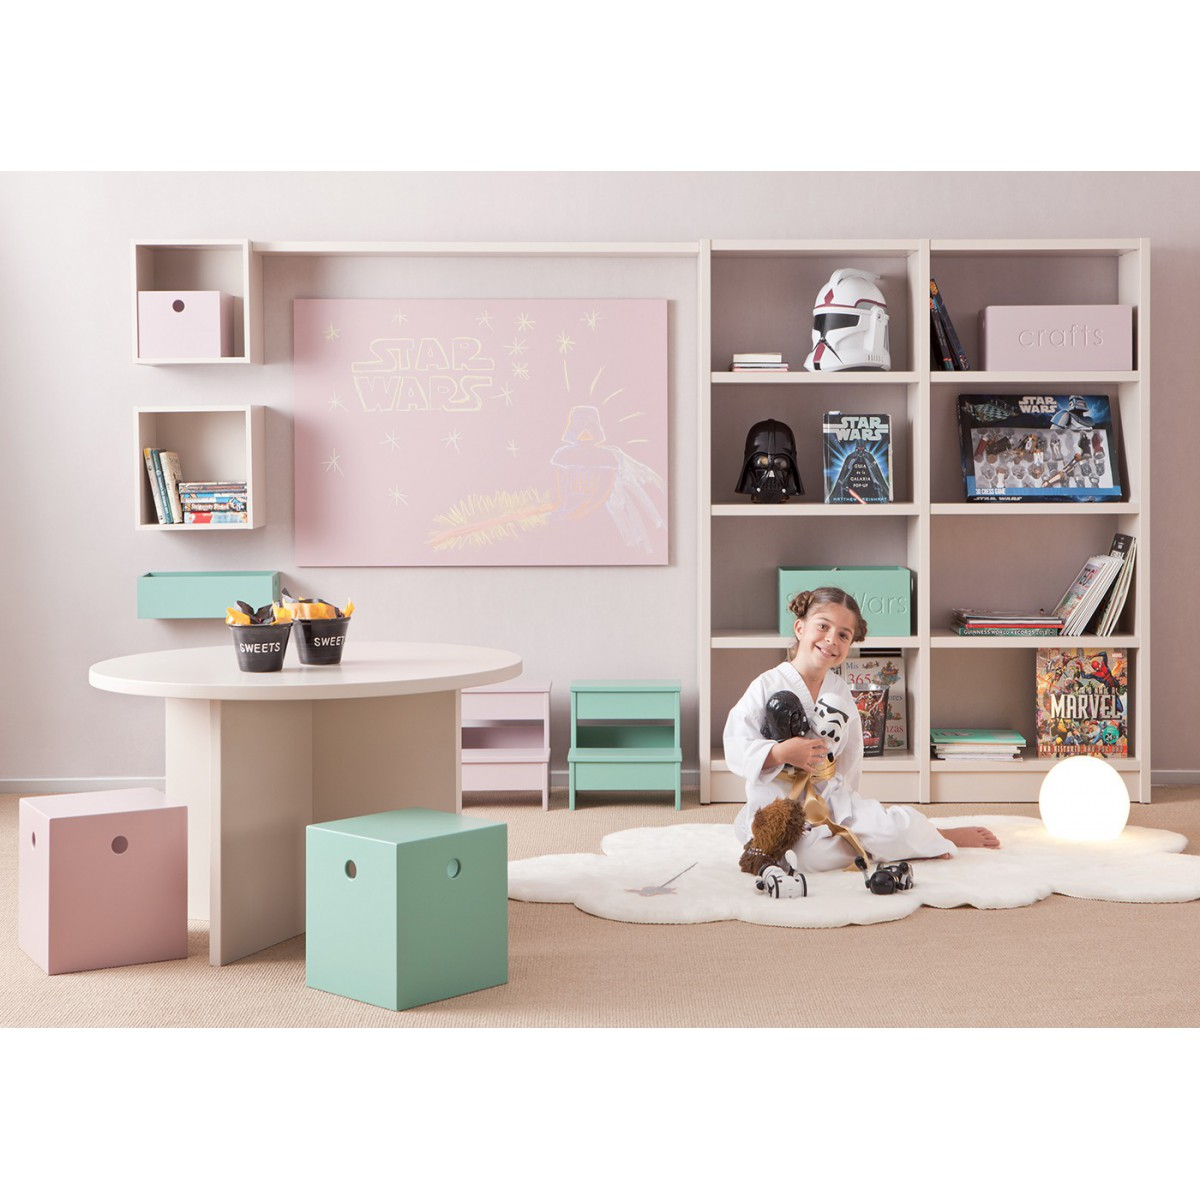 mobilier pour enfants de qualit et design sign asoral ksl living. Black Bedroom Furniture Sets. Home Design Ideas